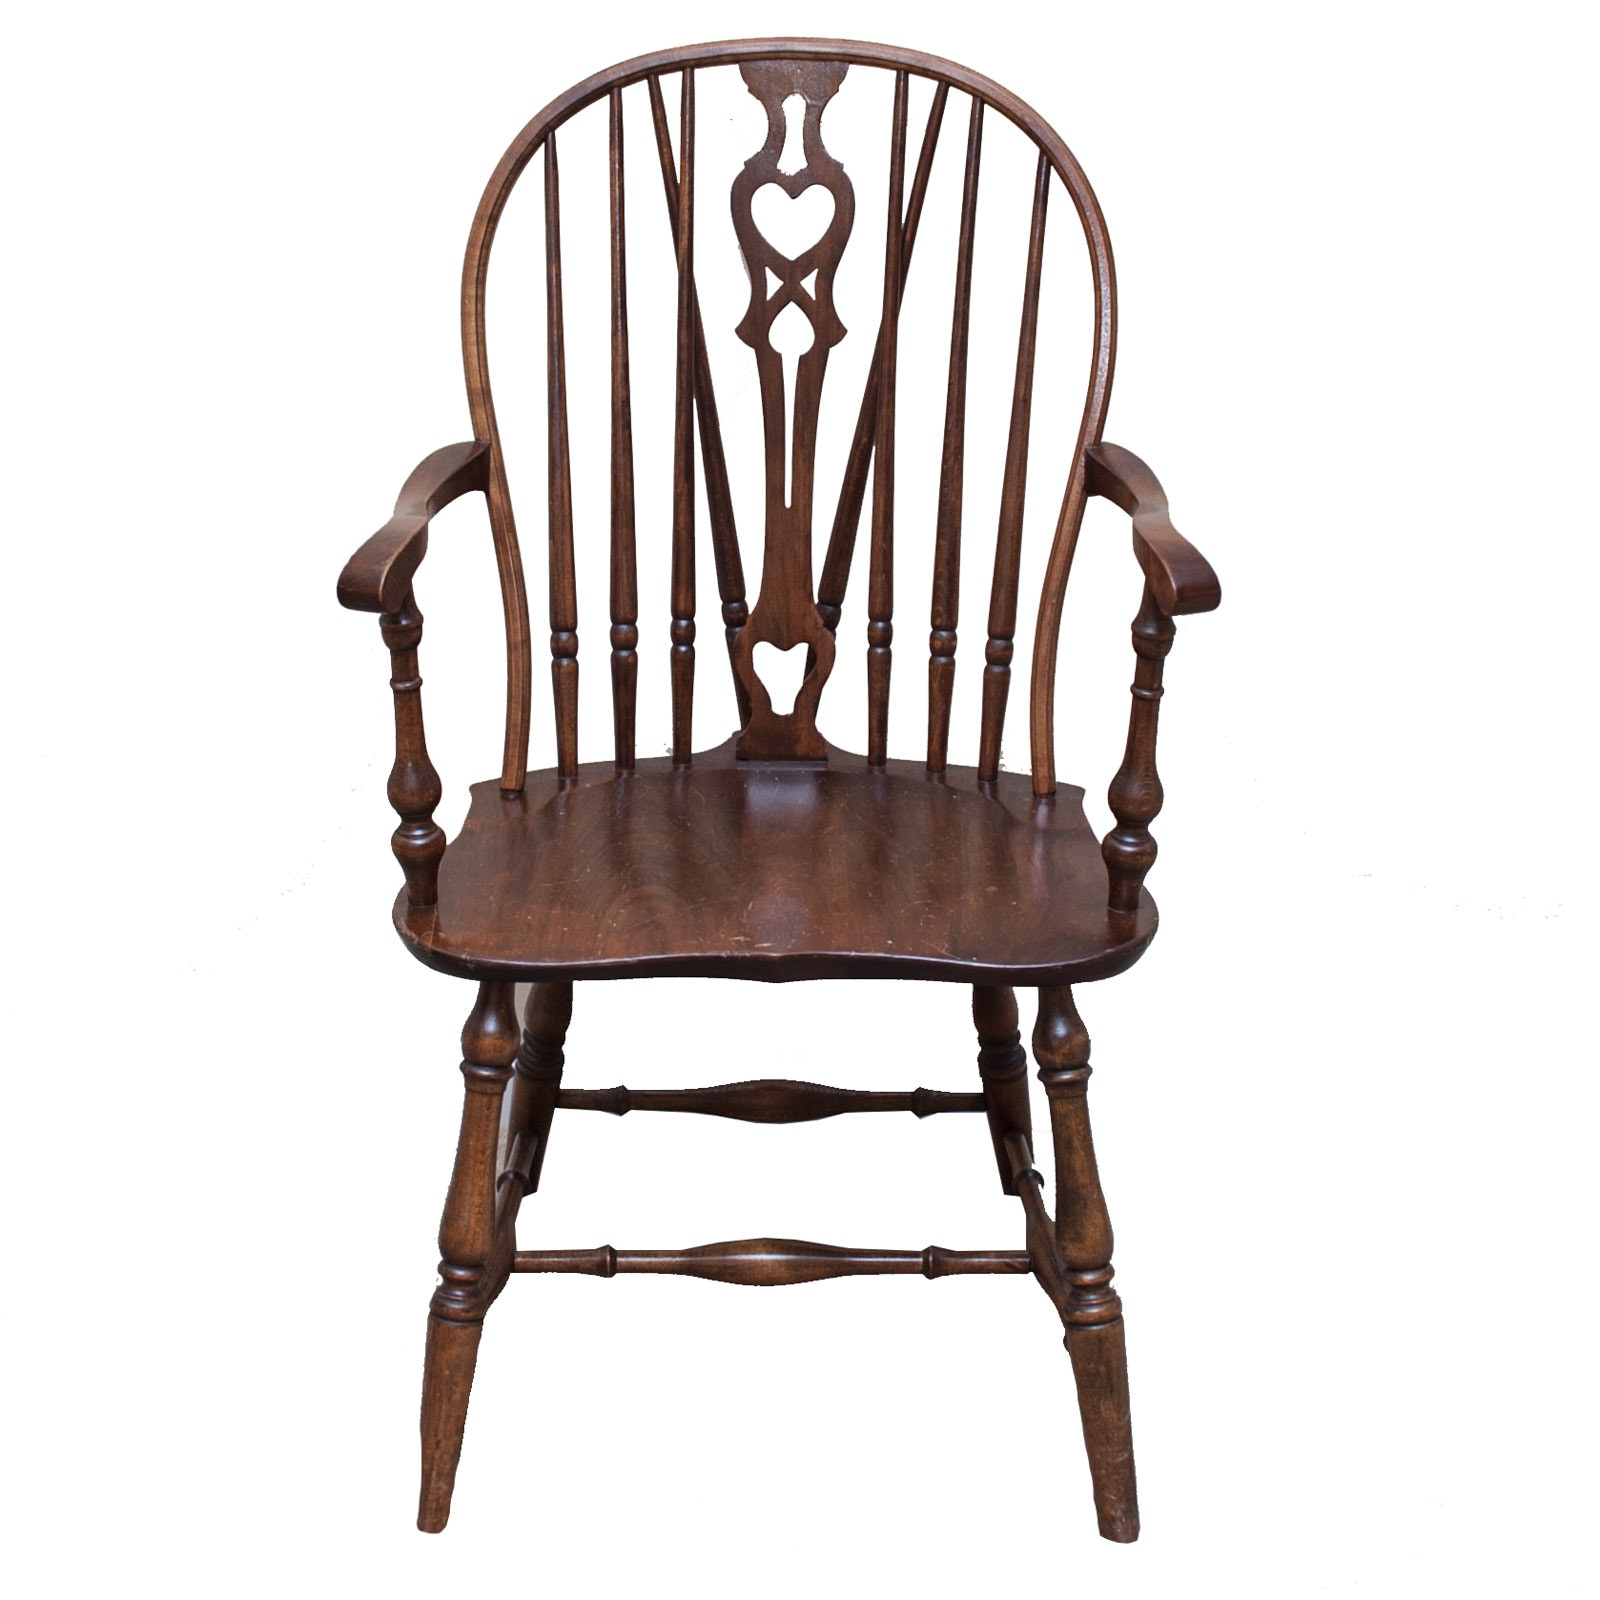 Vintage Windsor Style Wood Armchair